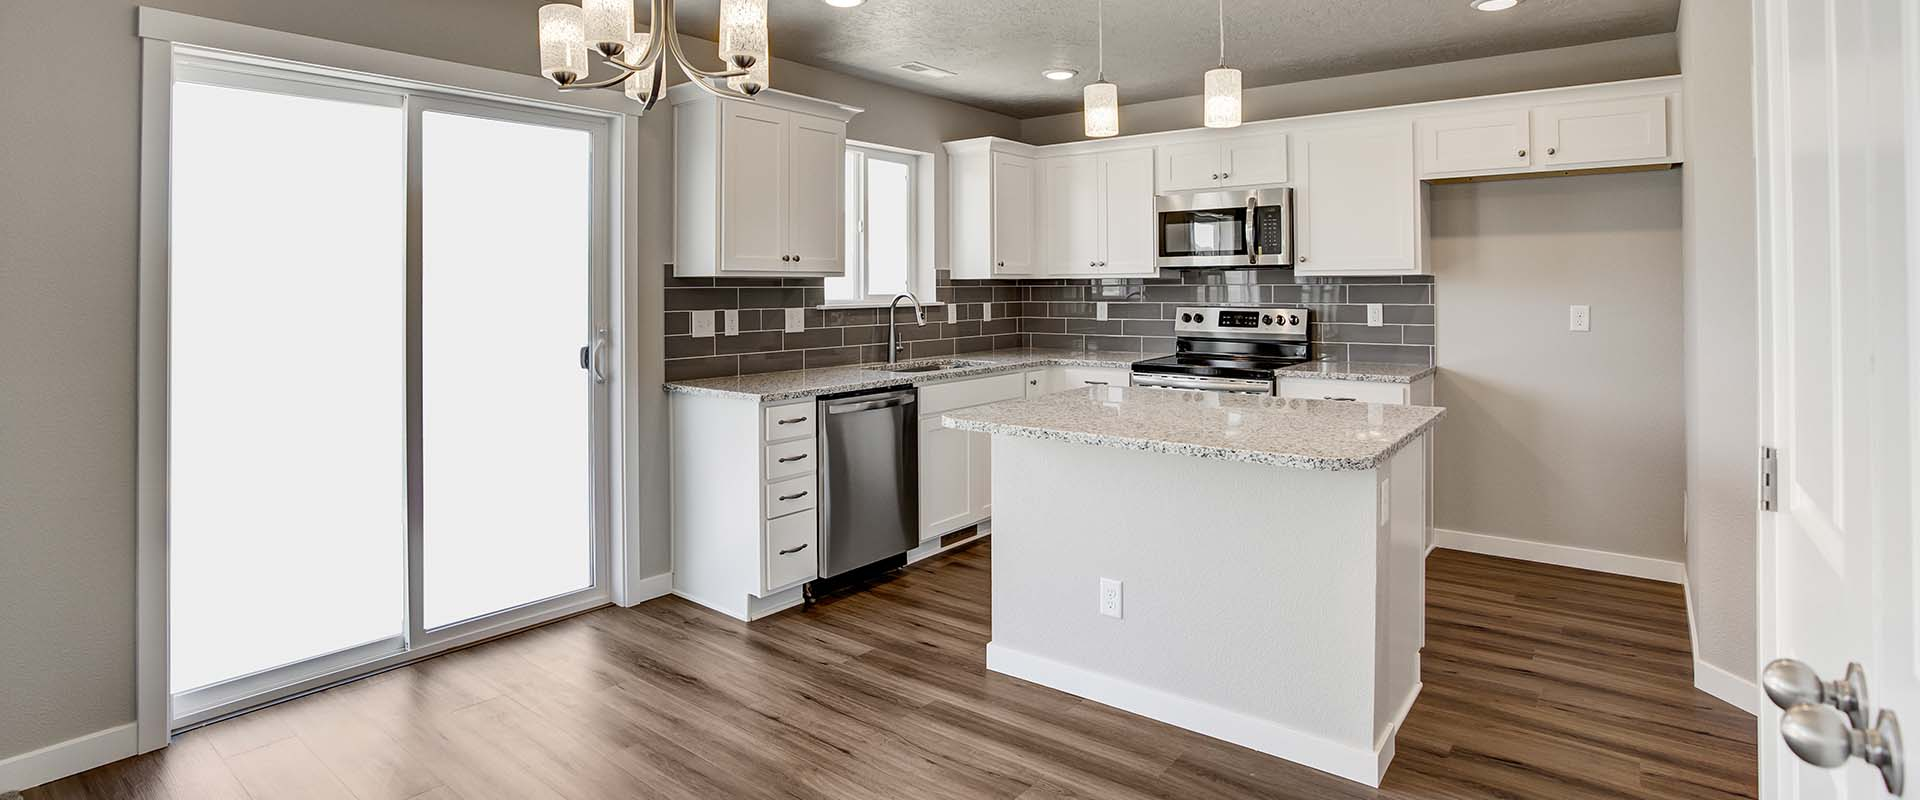 Eagle Island Kitchen-new-homes-boise-idaho-hubble-homes.jpg